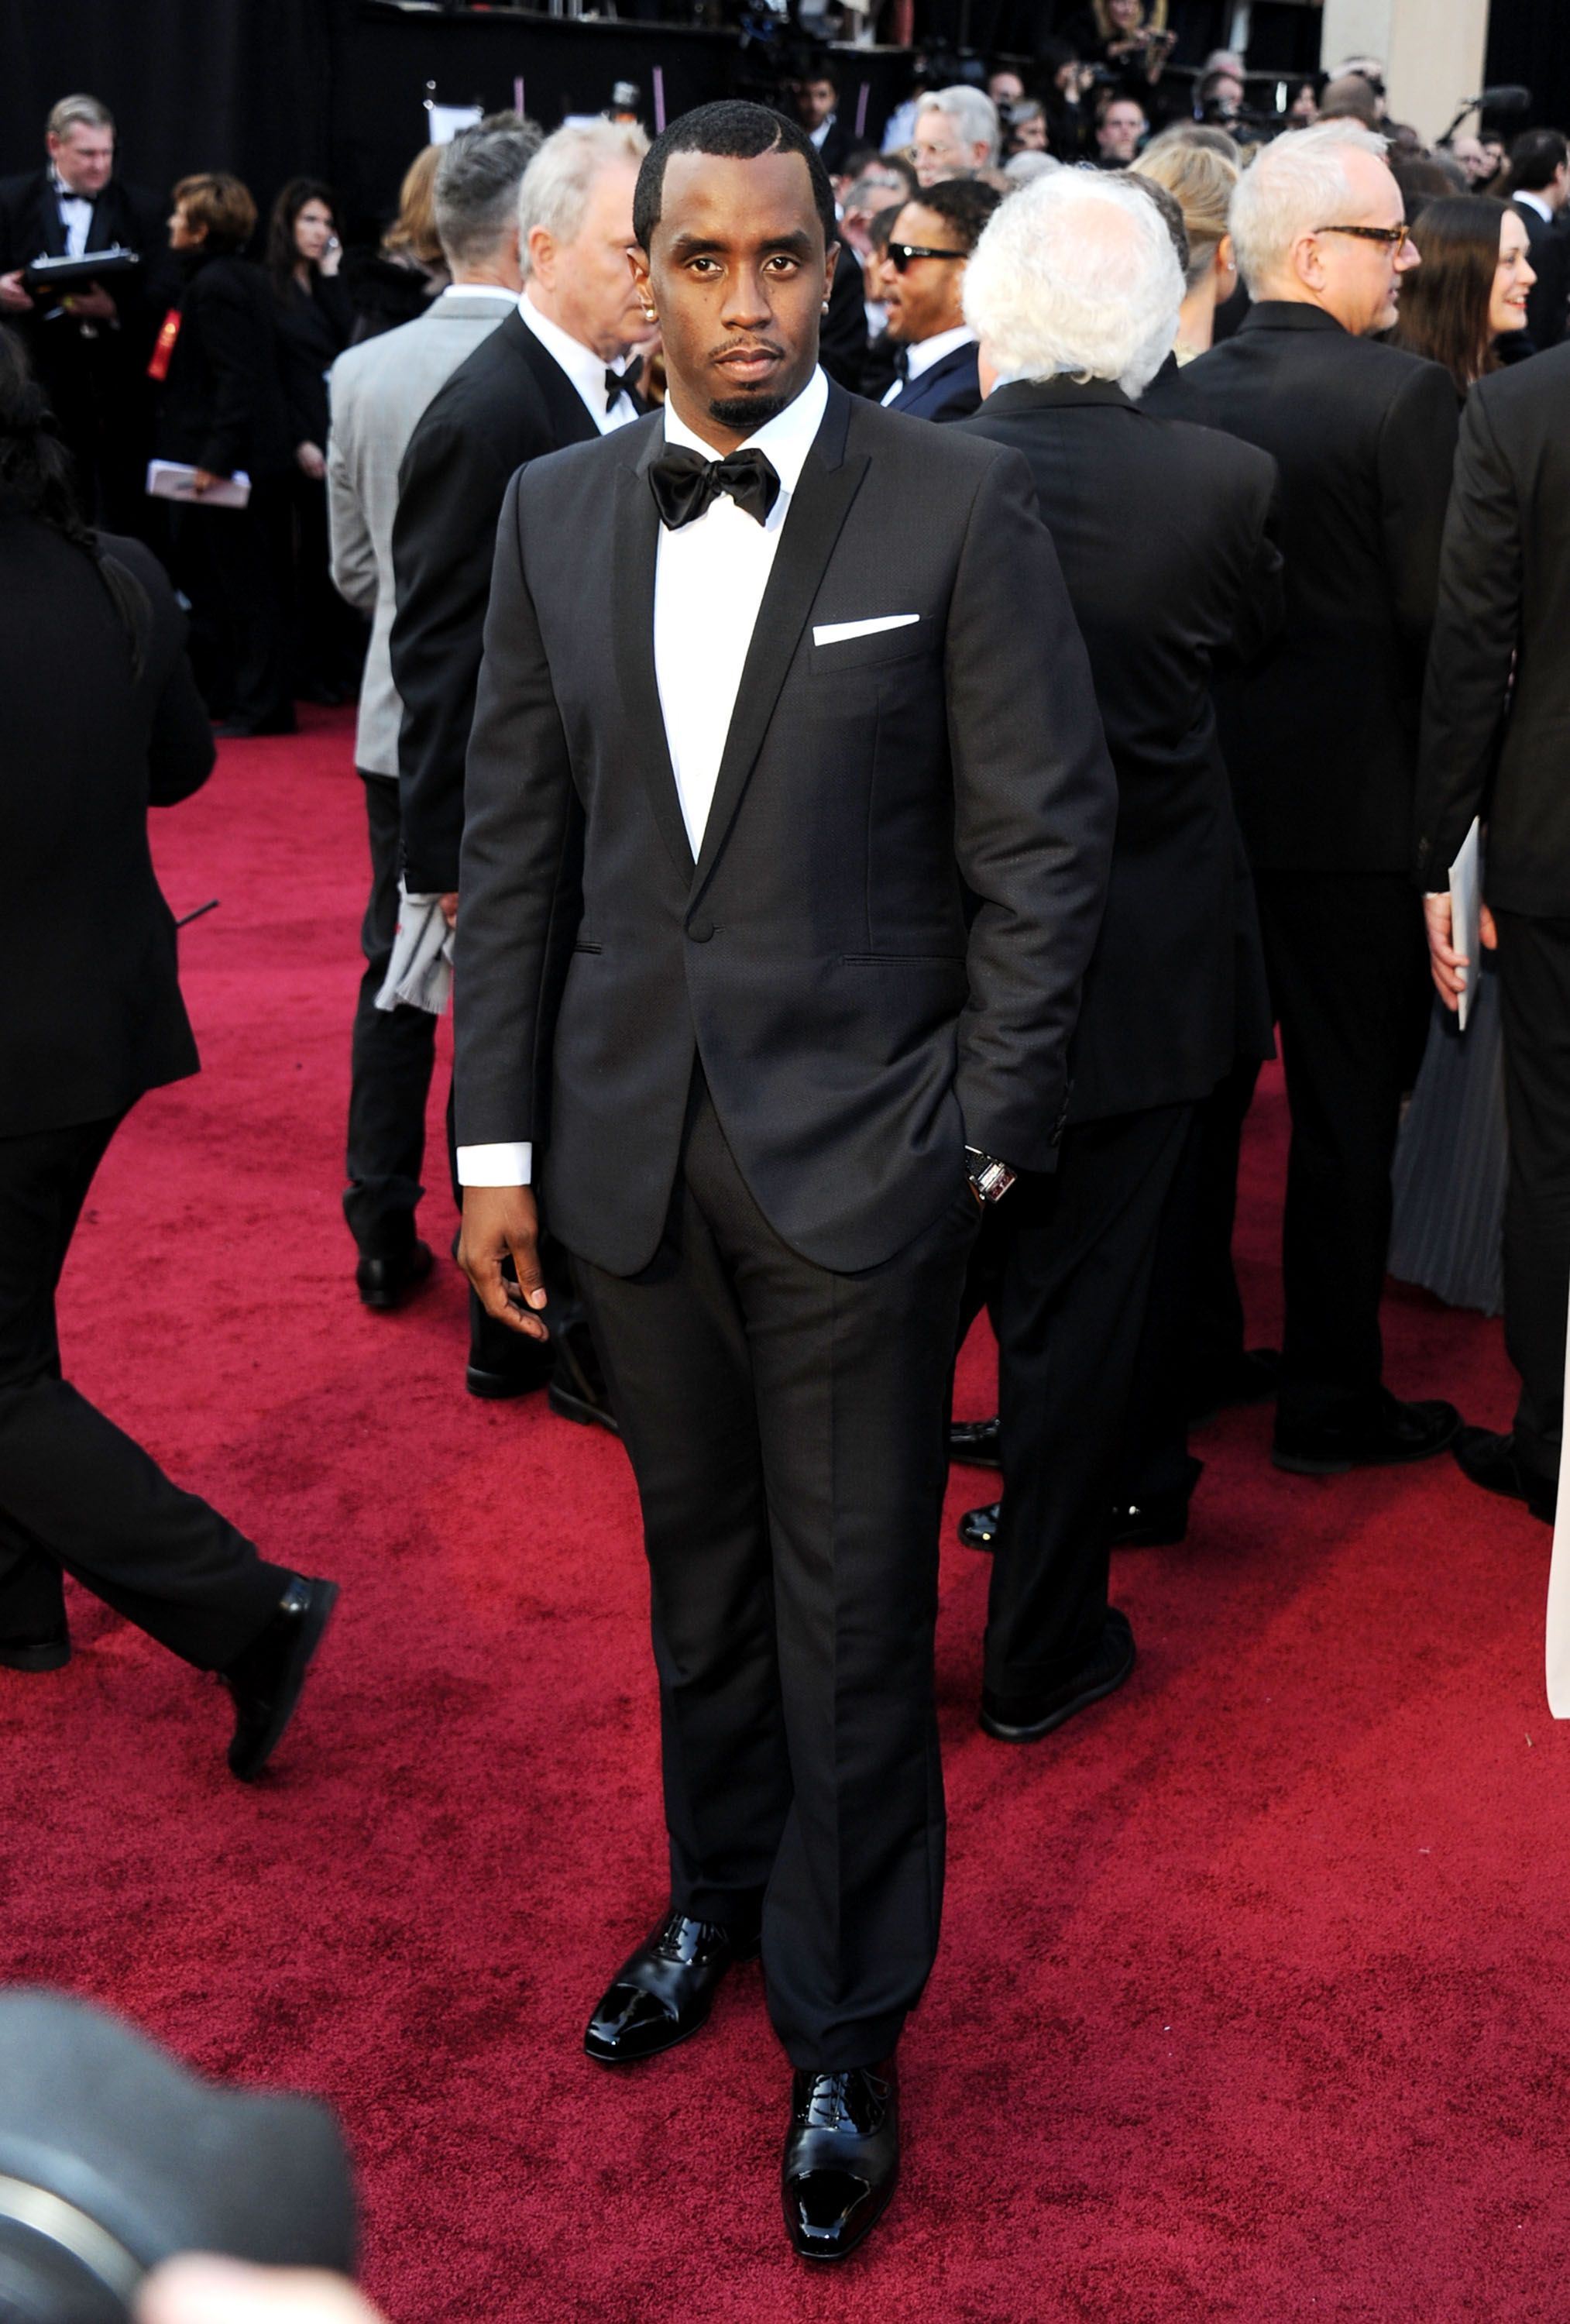 HOLLYWOOD, CA - FEBRUARY 26: Musician Sean 'Diddy' Combs arrives at the 84th Annual Academy Awards held at the Hollywood & Highland Center on February 26, 2012 in Hollywood, California. (Photo by Michael Buckner/Getty Images)